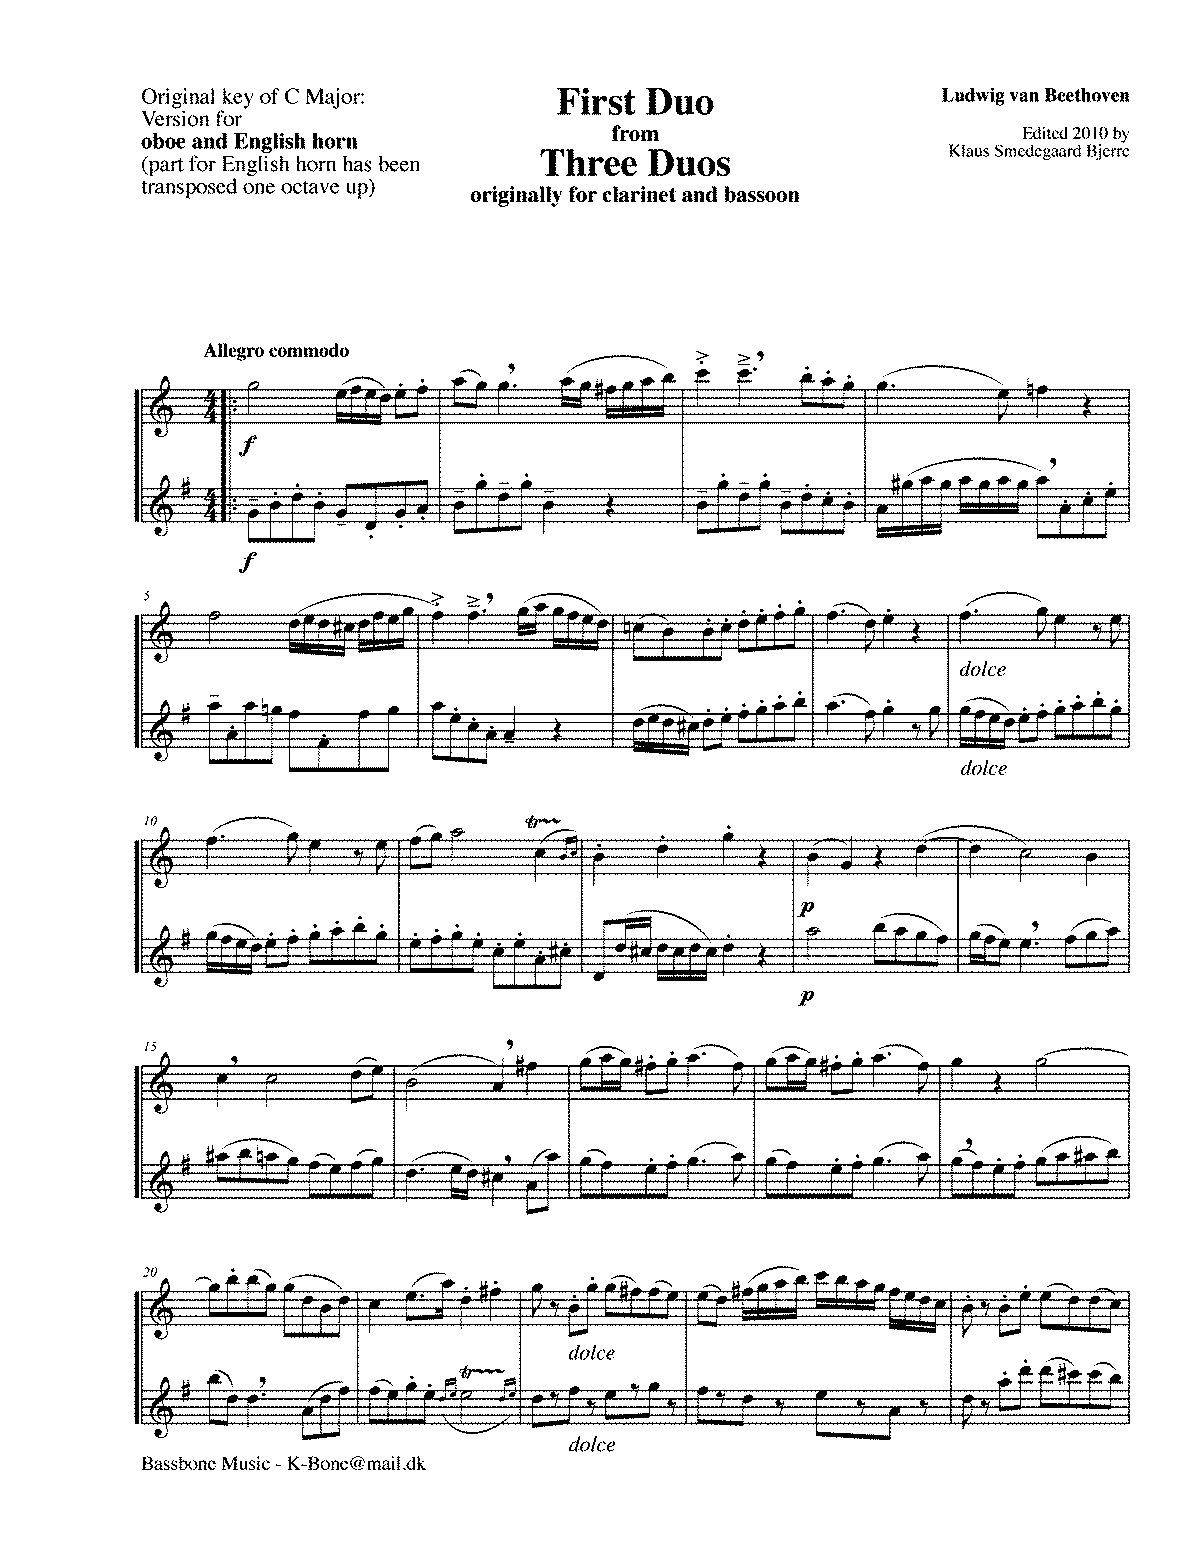 WIMA.8189-Beethoven-Duet-1-C-major-Oboe&English-Horn.pdf